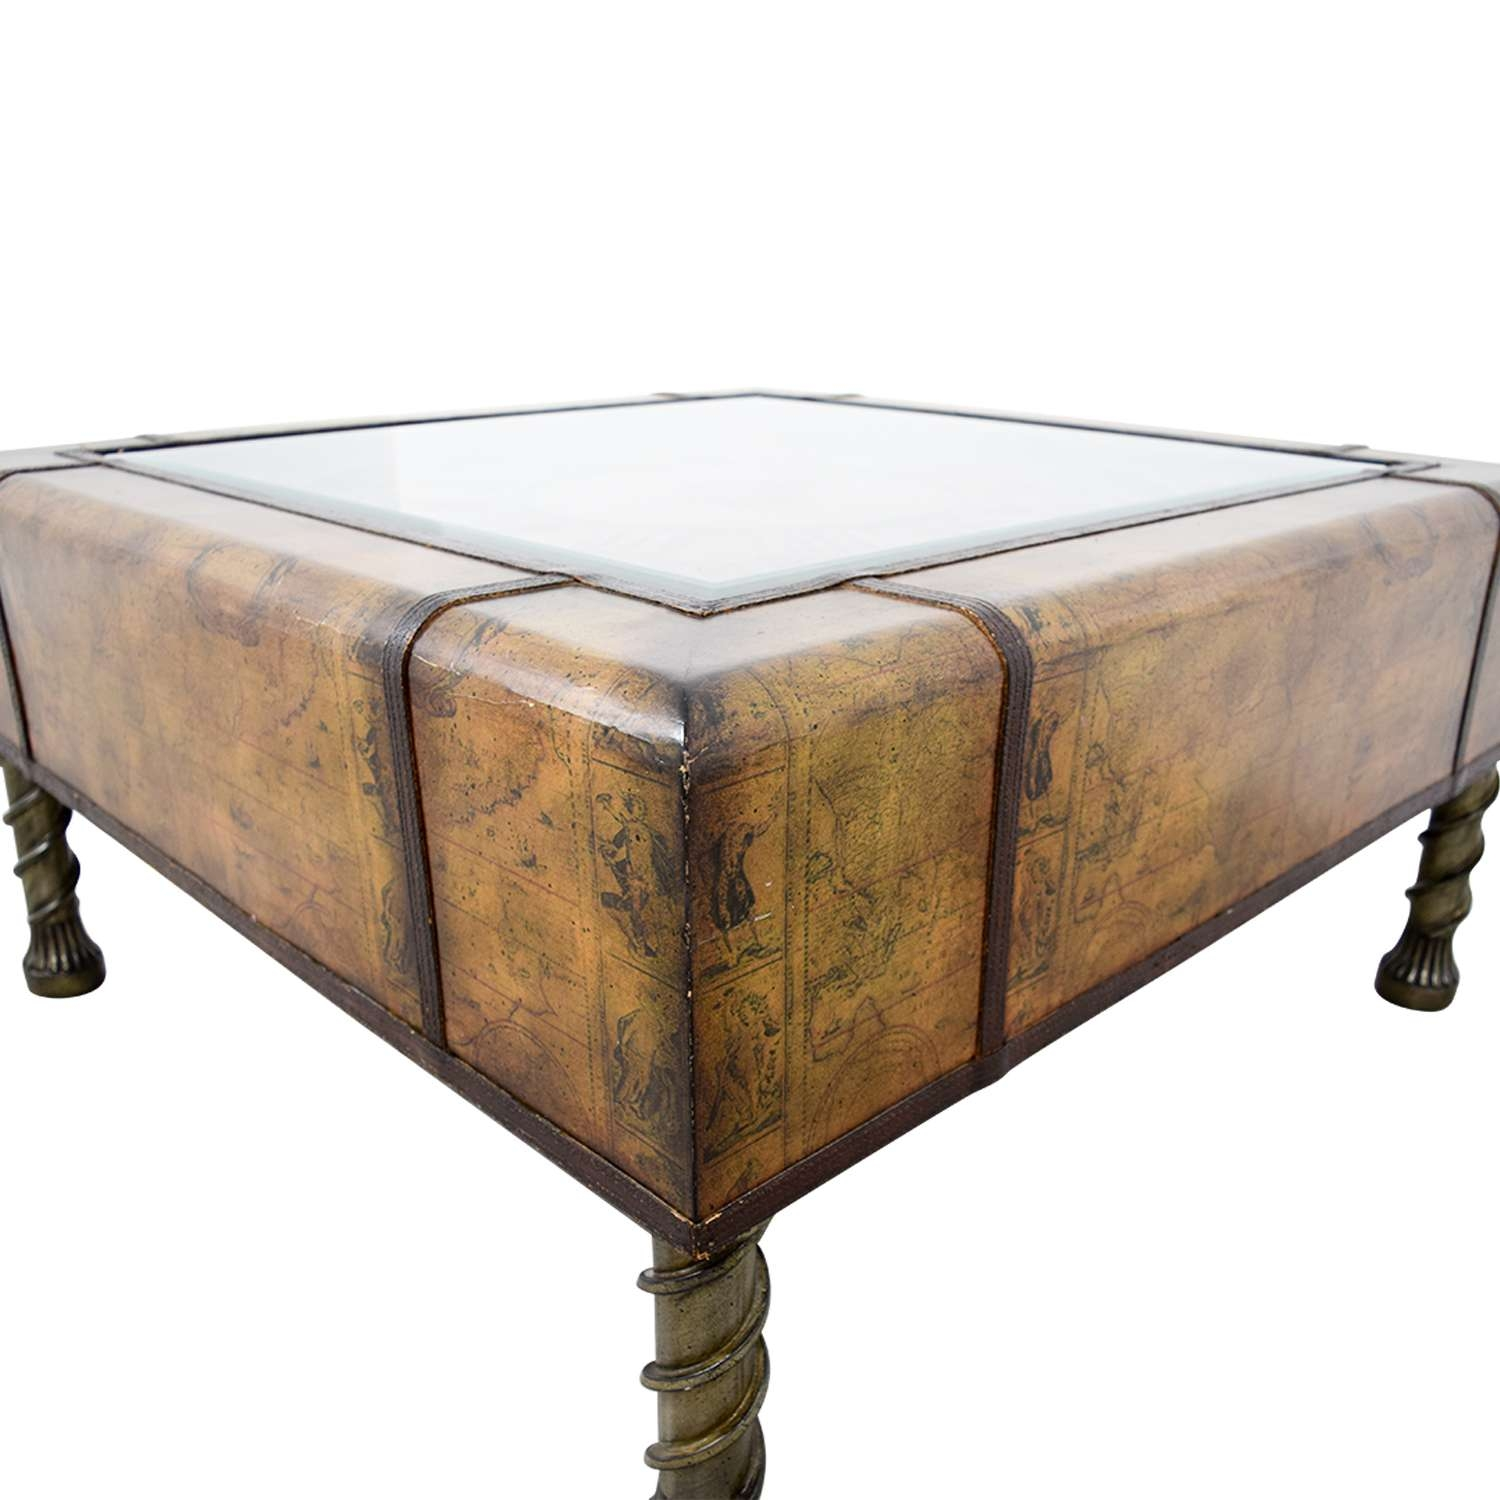 [%latest Coffee Tables With Clock Top In 87% Off – Glass Clock Top Coffee Table / Tables|87% Off – Glass Clock Top Coffee Table / Tables Throughout Latest Coffee Tables With Clock Top%] (View 12 of 20)